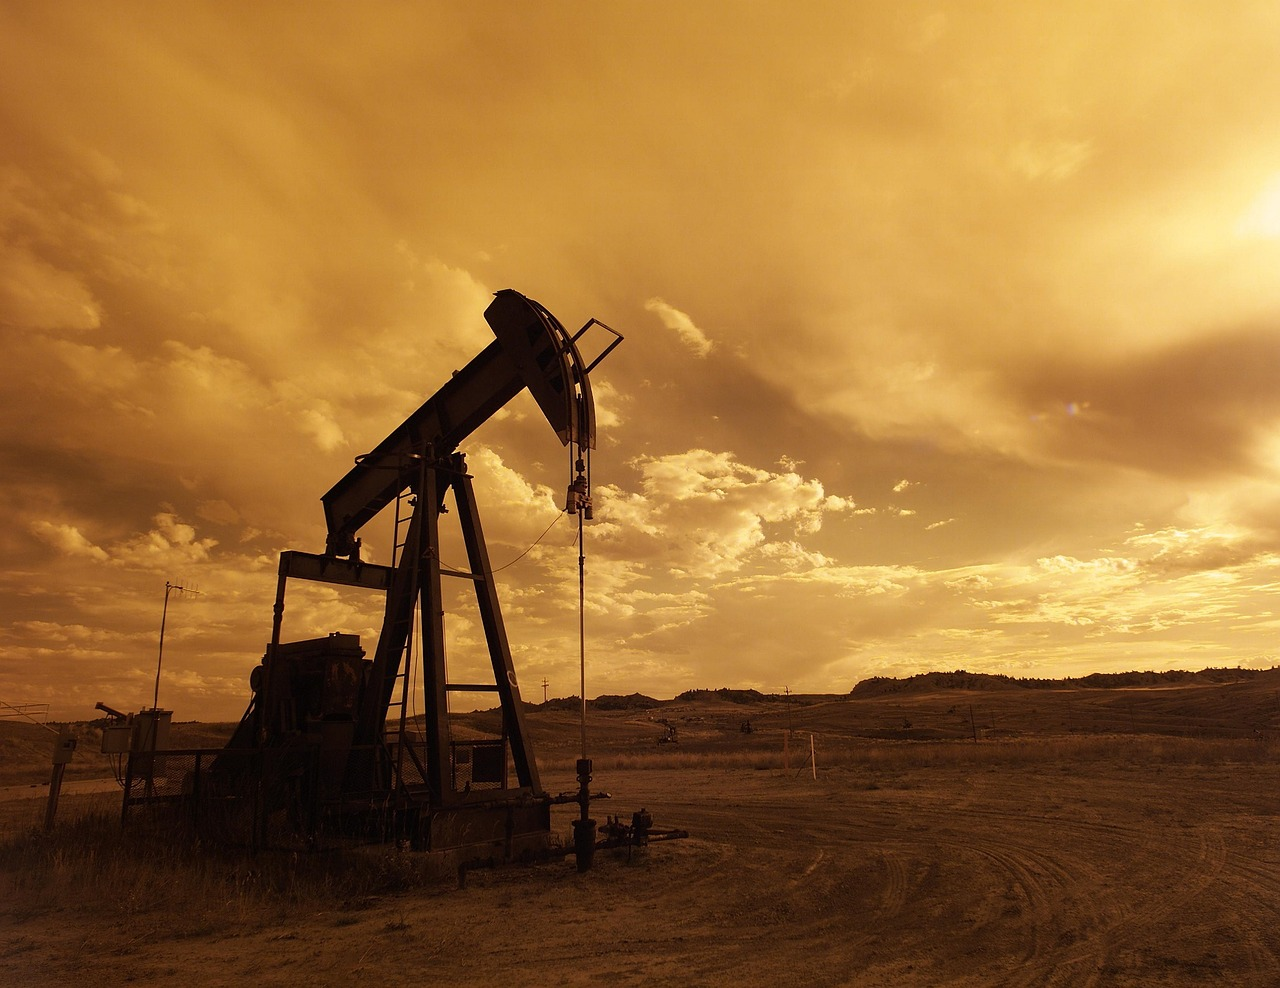 What key technologies are advancing oil and gas drilling?